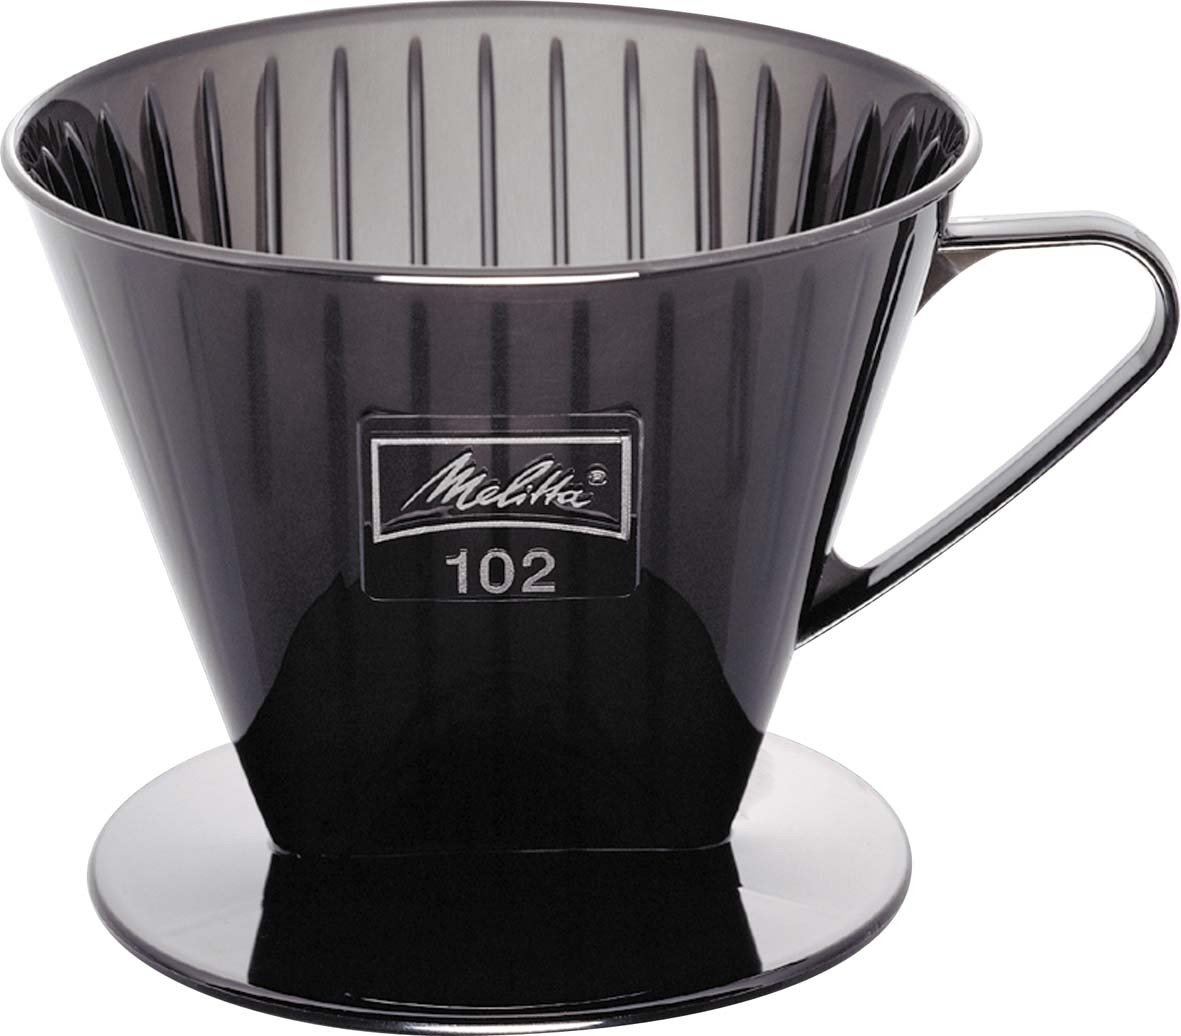 Melitta 172726 reusable coffee filter for 102 filter papers 6651152